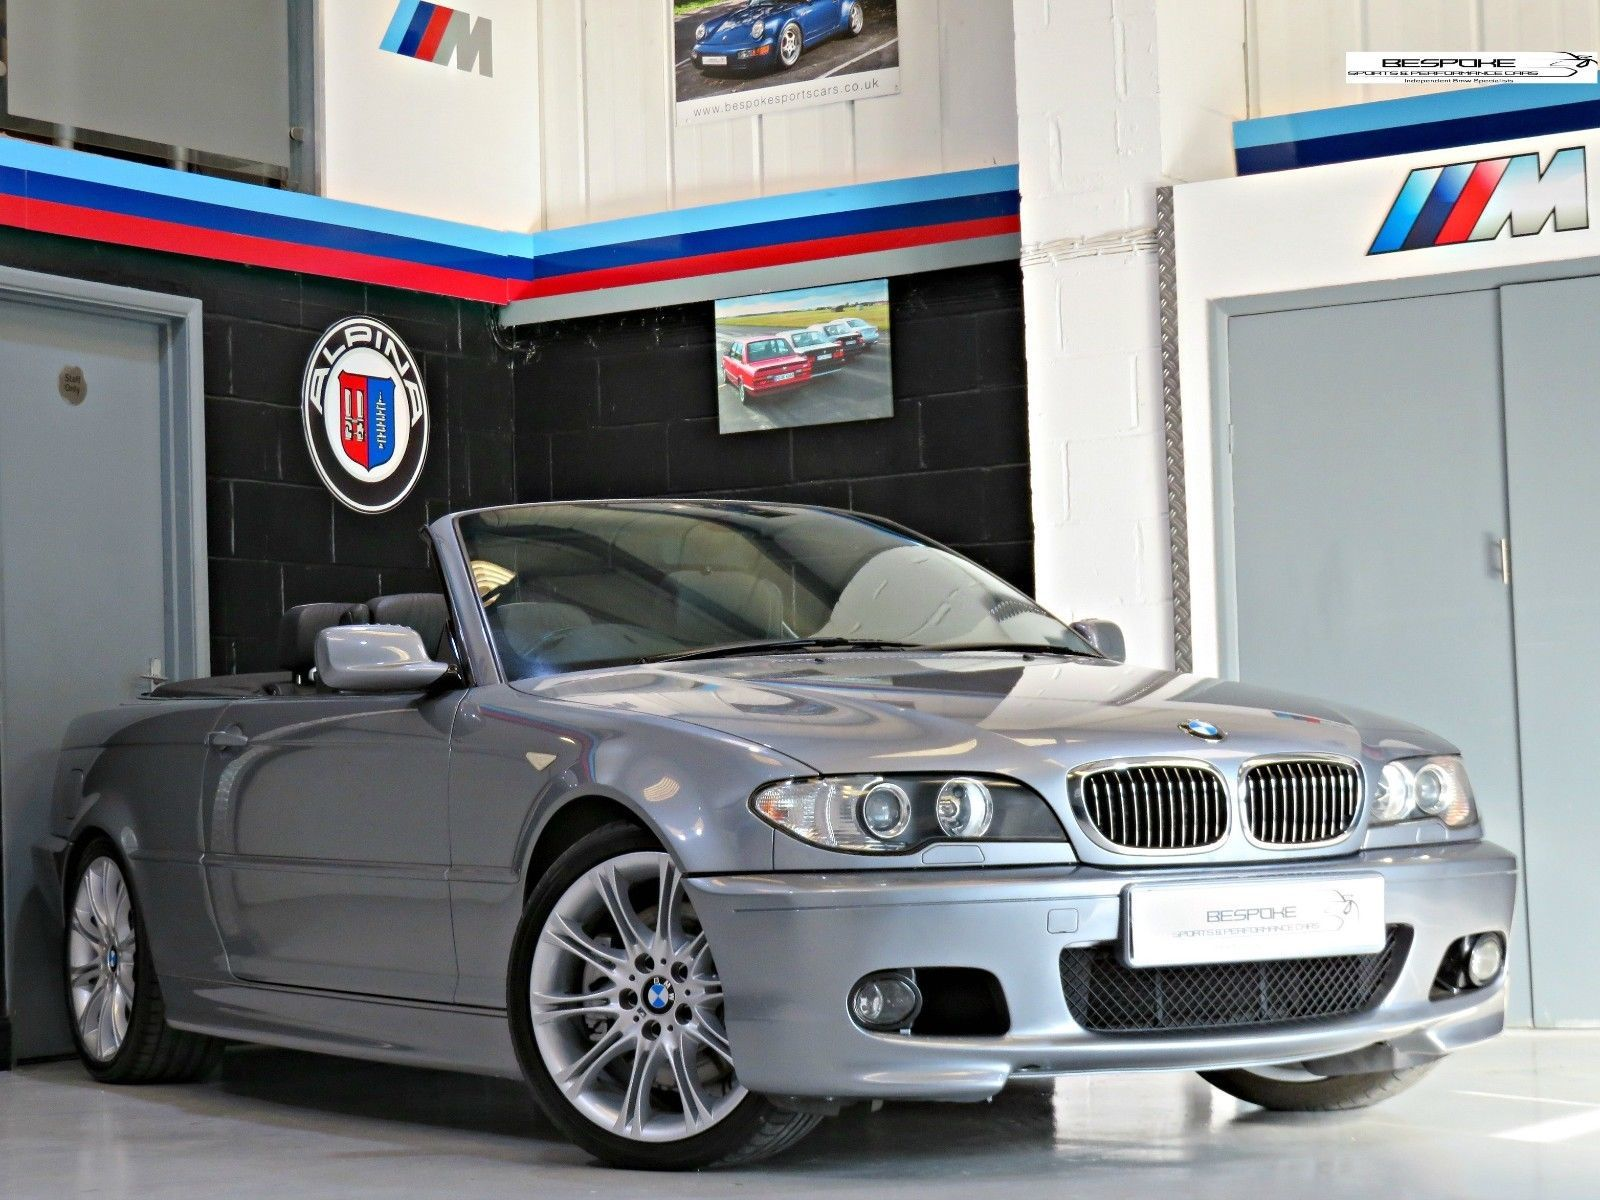 2005 Bmw 330ci M Sport Convertible 6 Speed Manual 231 Bhp Silver Grey Bmw Convertible Bavarian Motor Works